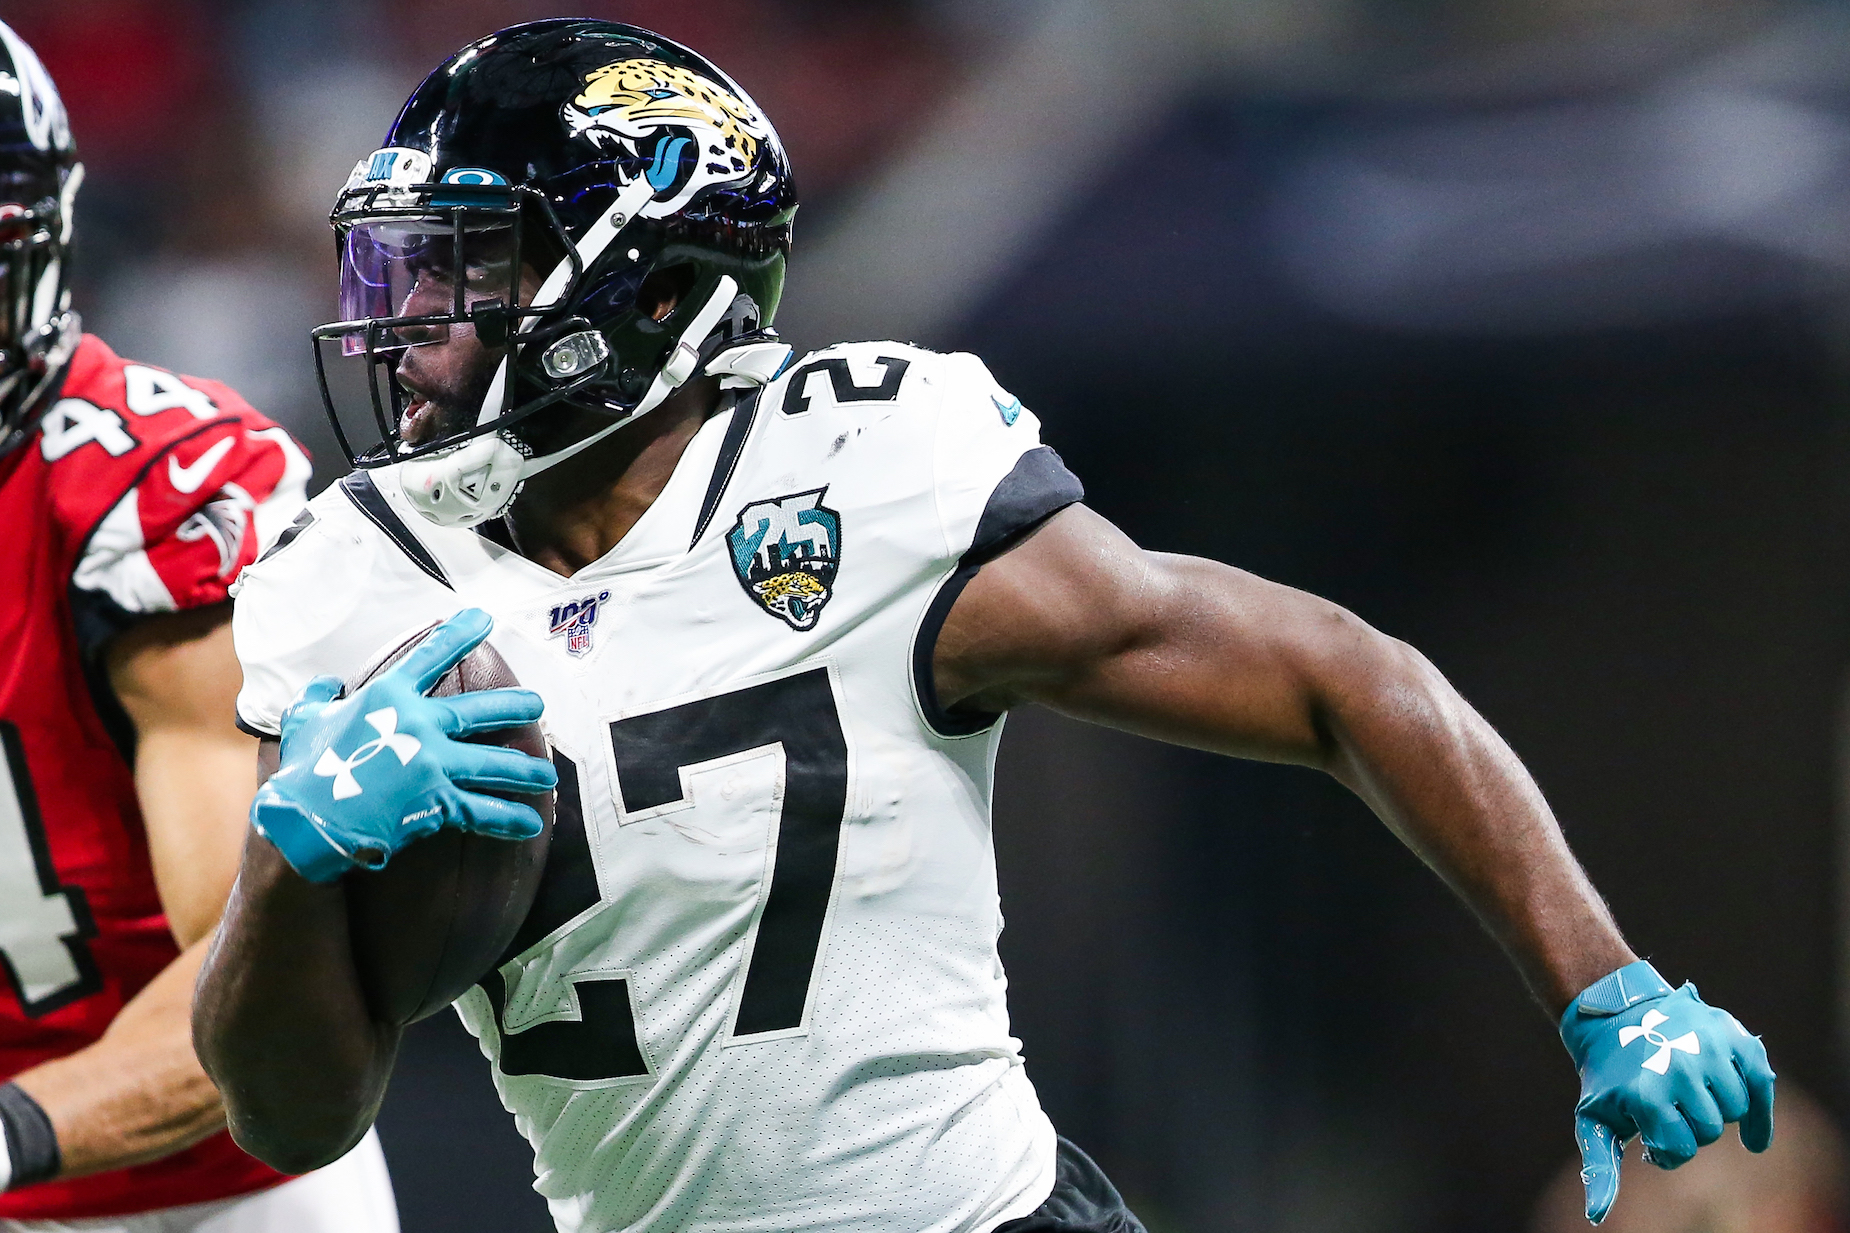 How much salary will Leonard Fournette earn with the Tampa Bay Buccaneers?